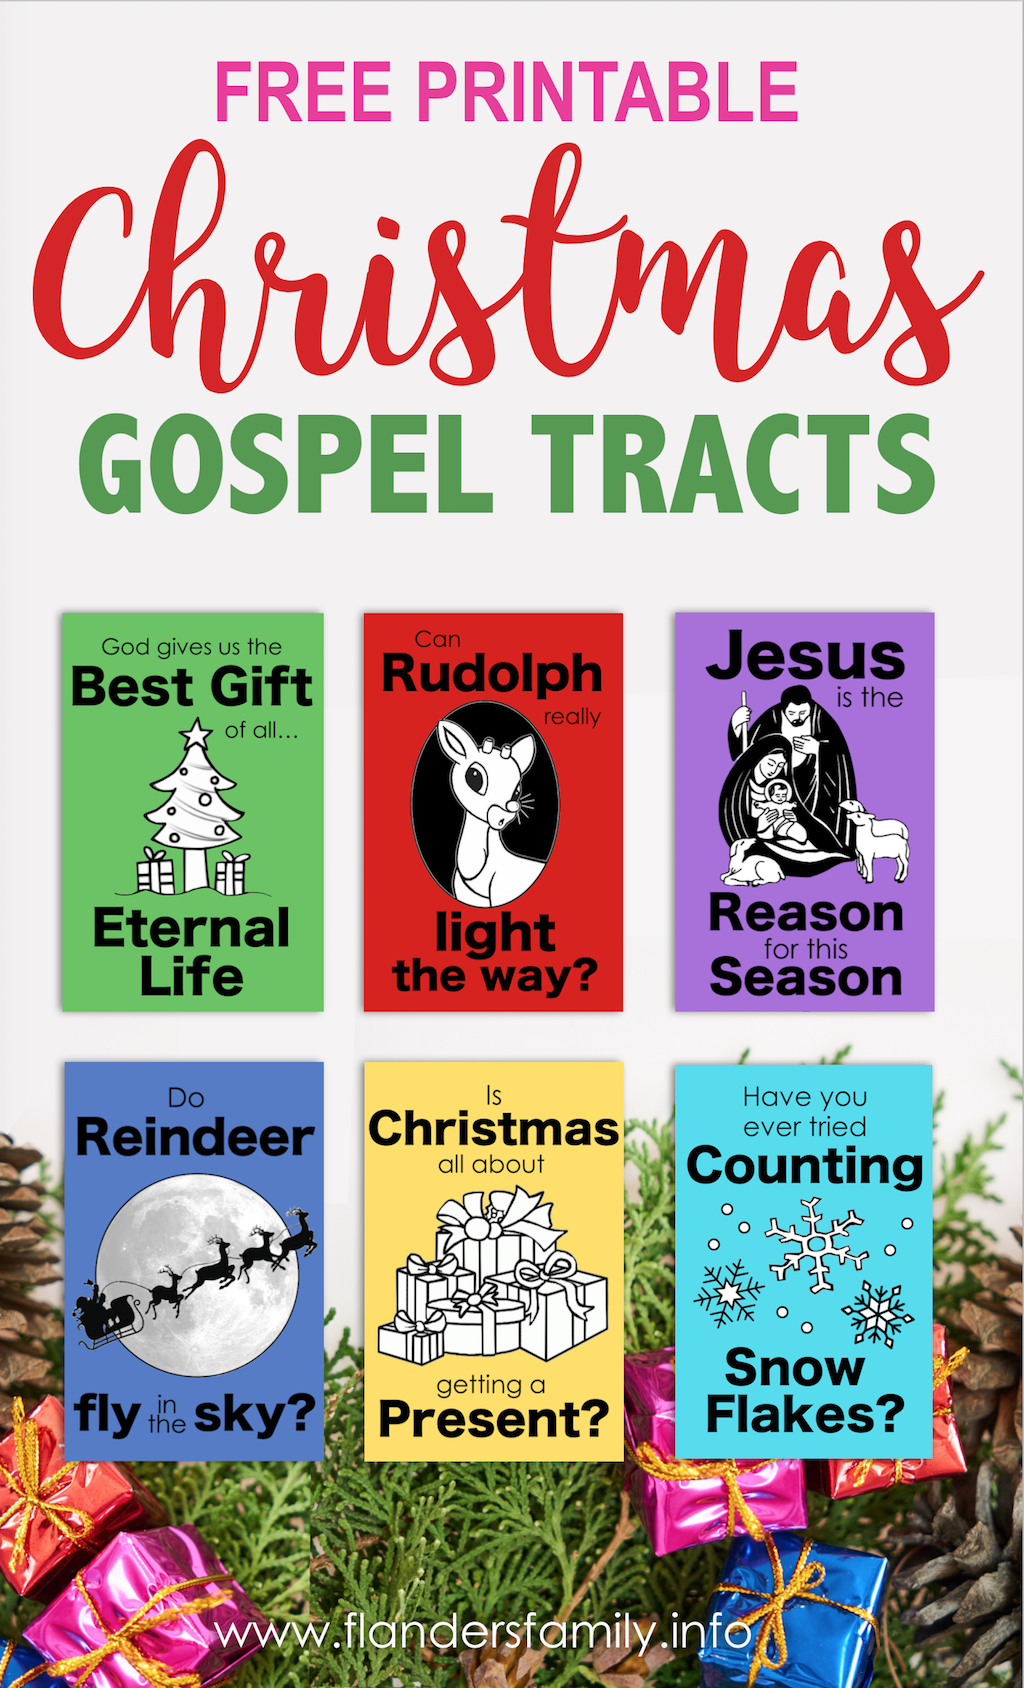 Christmas Gospel Tracts Free Printables Flanders Family